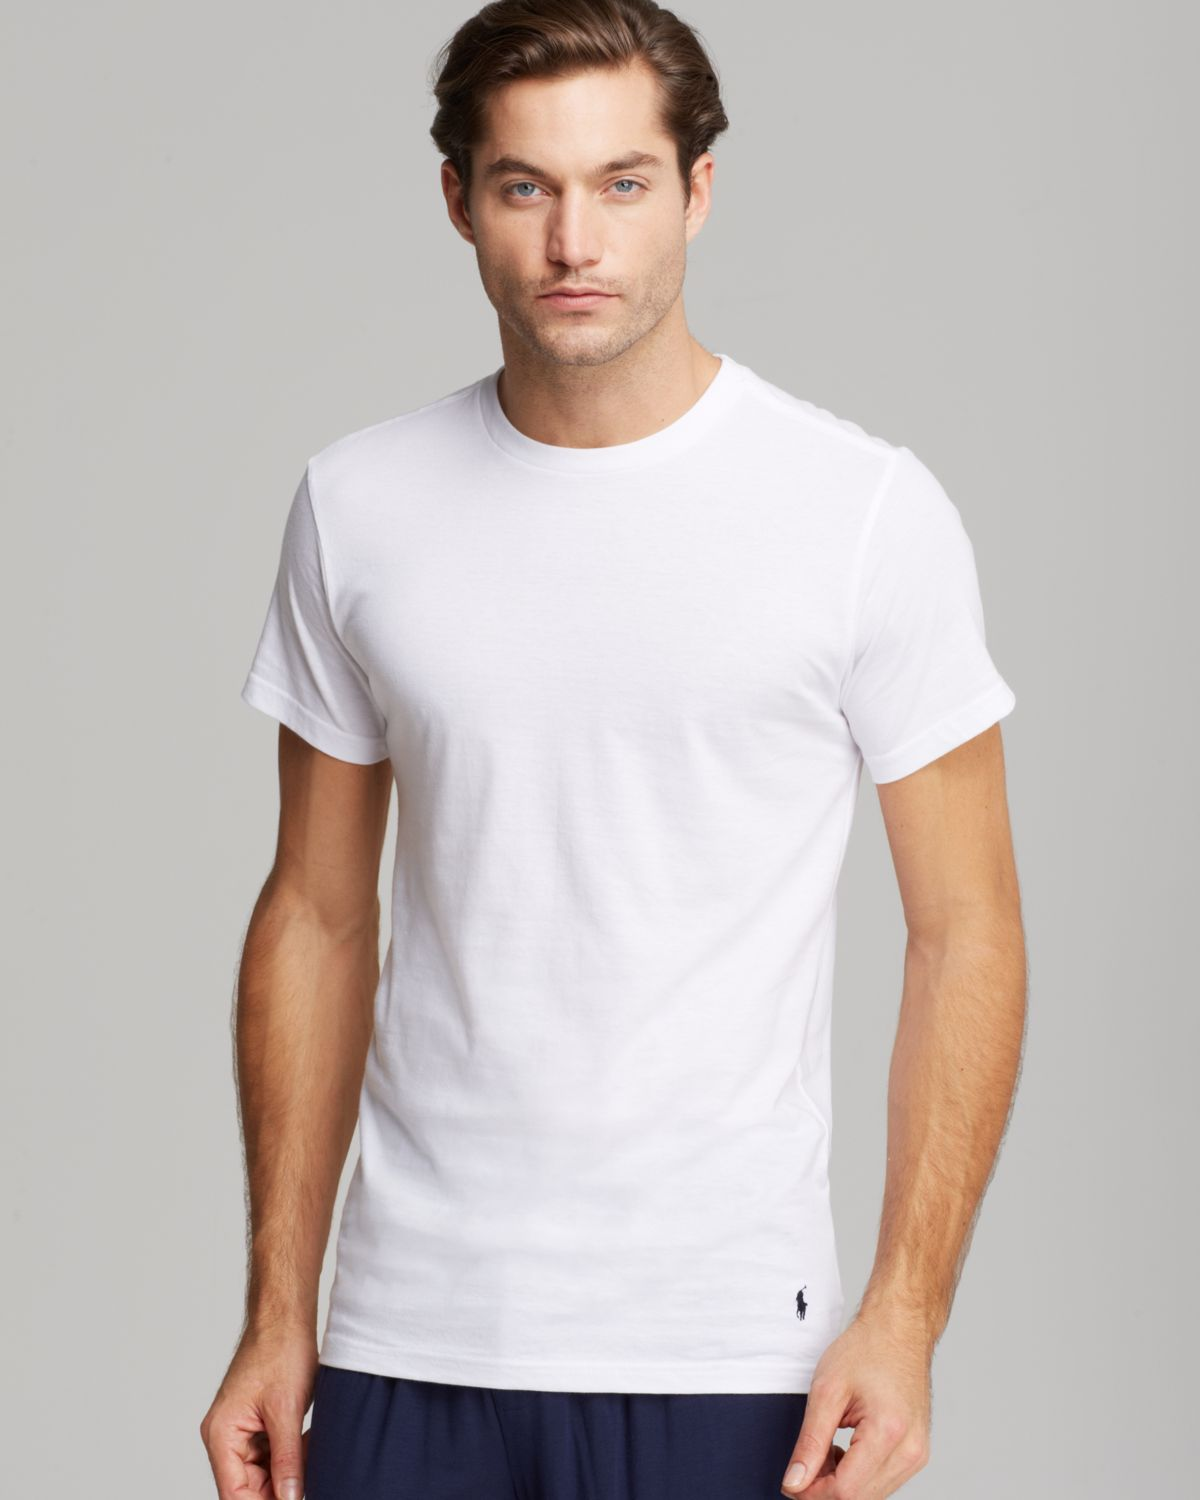 polo ralph lauren slim fit crewneck tee pack of 3 in white for men. Black Bedroom Furniture Sets. Home Design Ideas